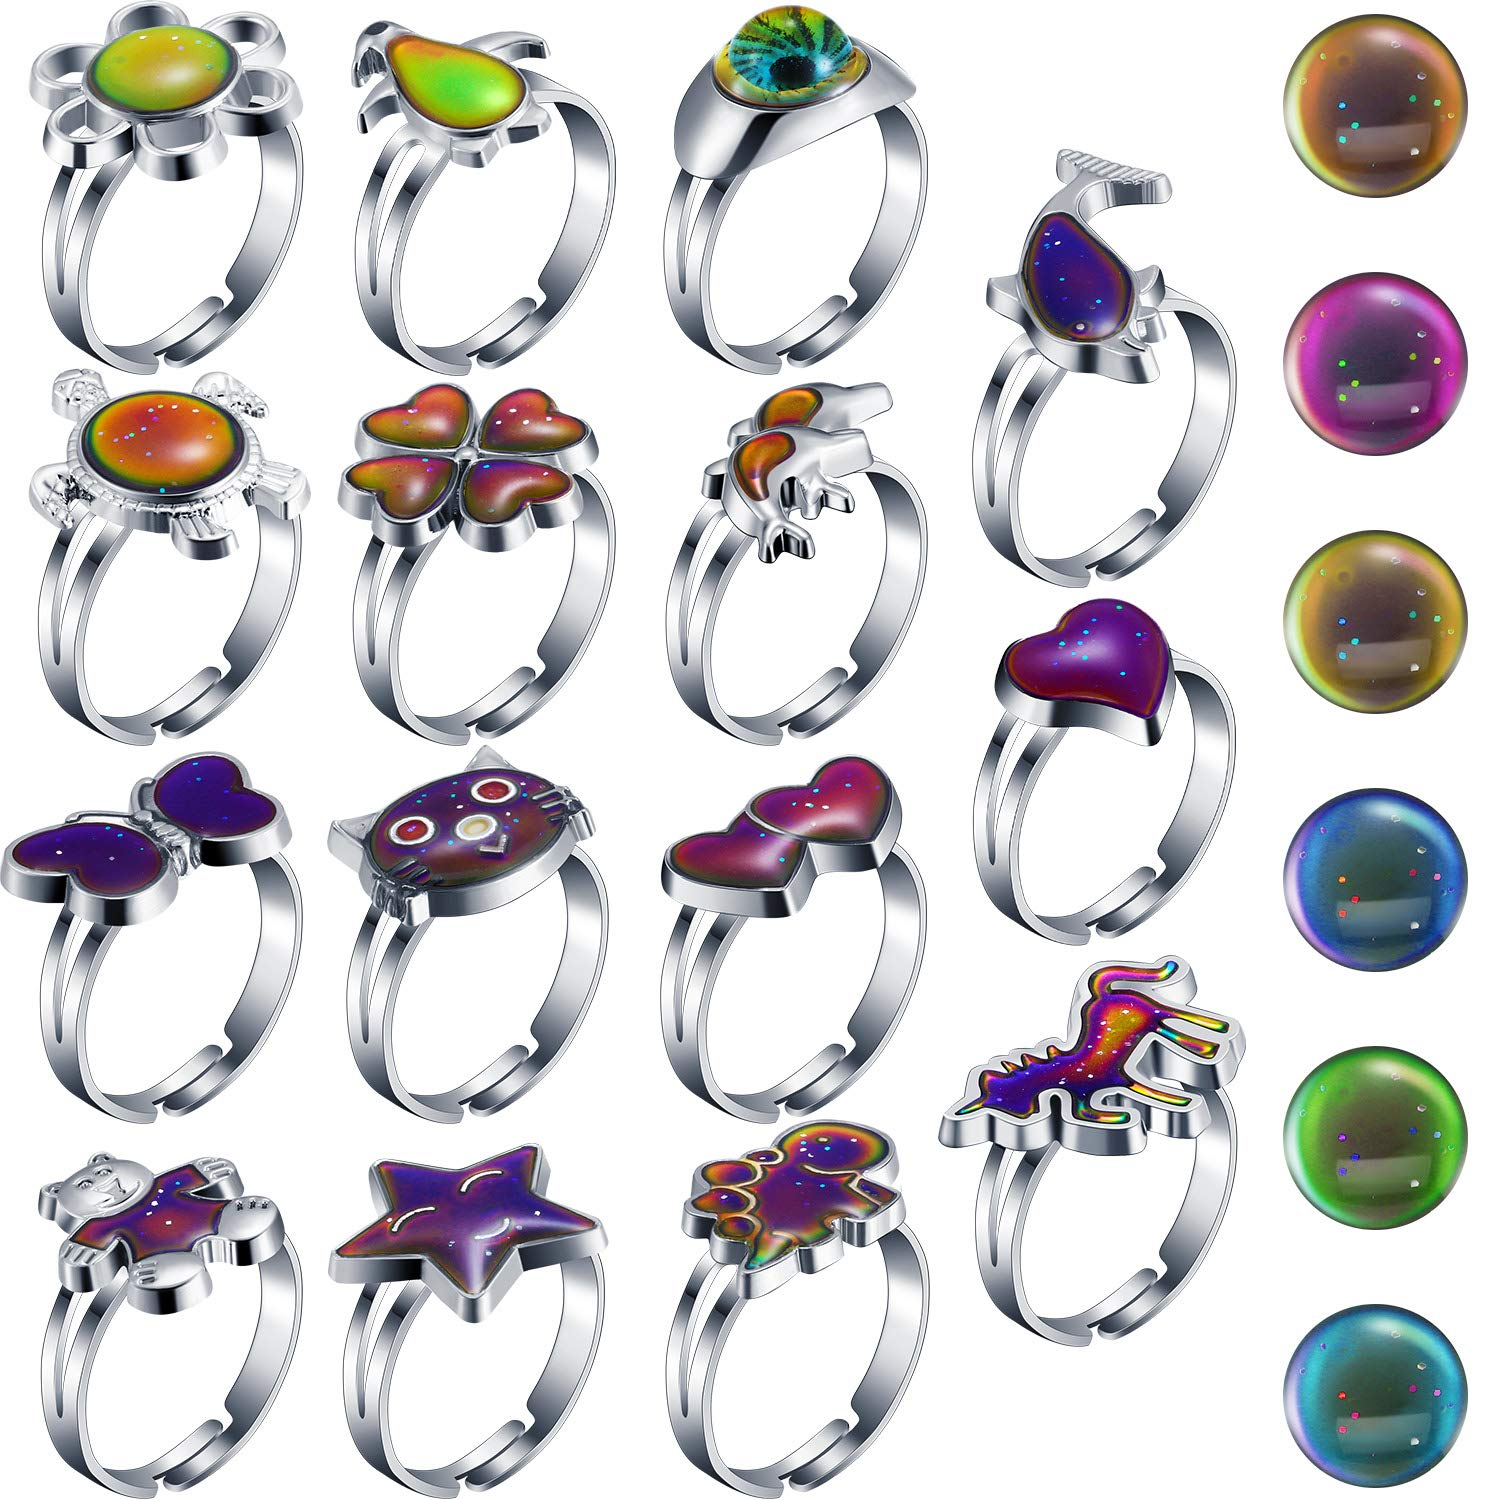 Hicarer 15 Pieces Adjustable Mood Rings for Girls and Boys Mixed Color Changing Mood Rings for Halloween Costume Props Birthday Party Favors and Goodie Bag Fillers (Style B) by Hicarer